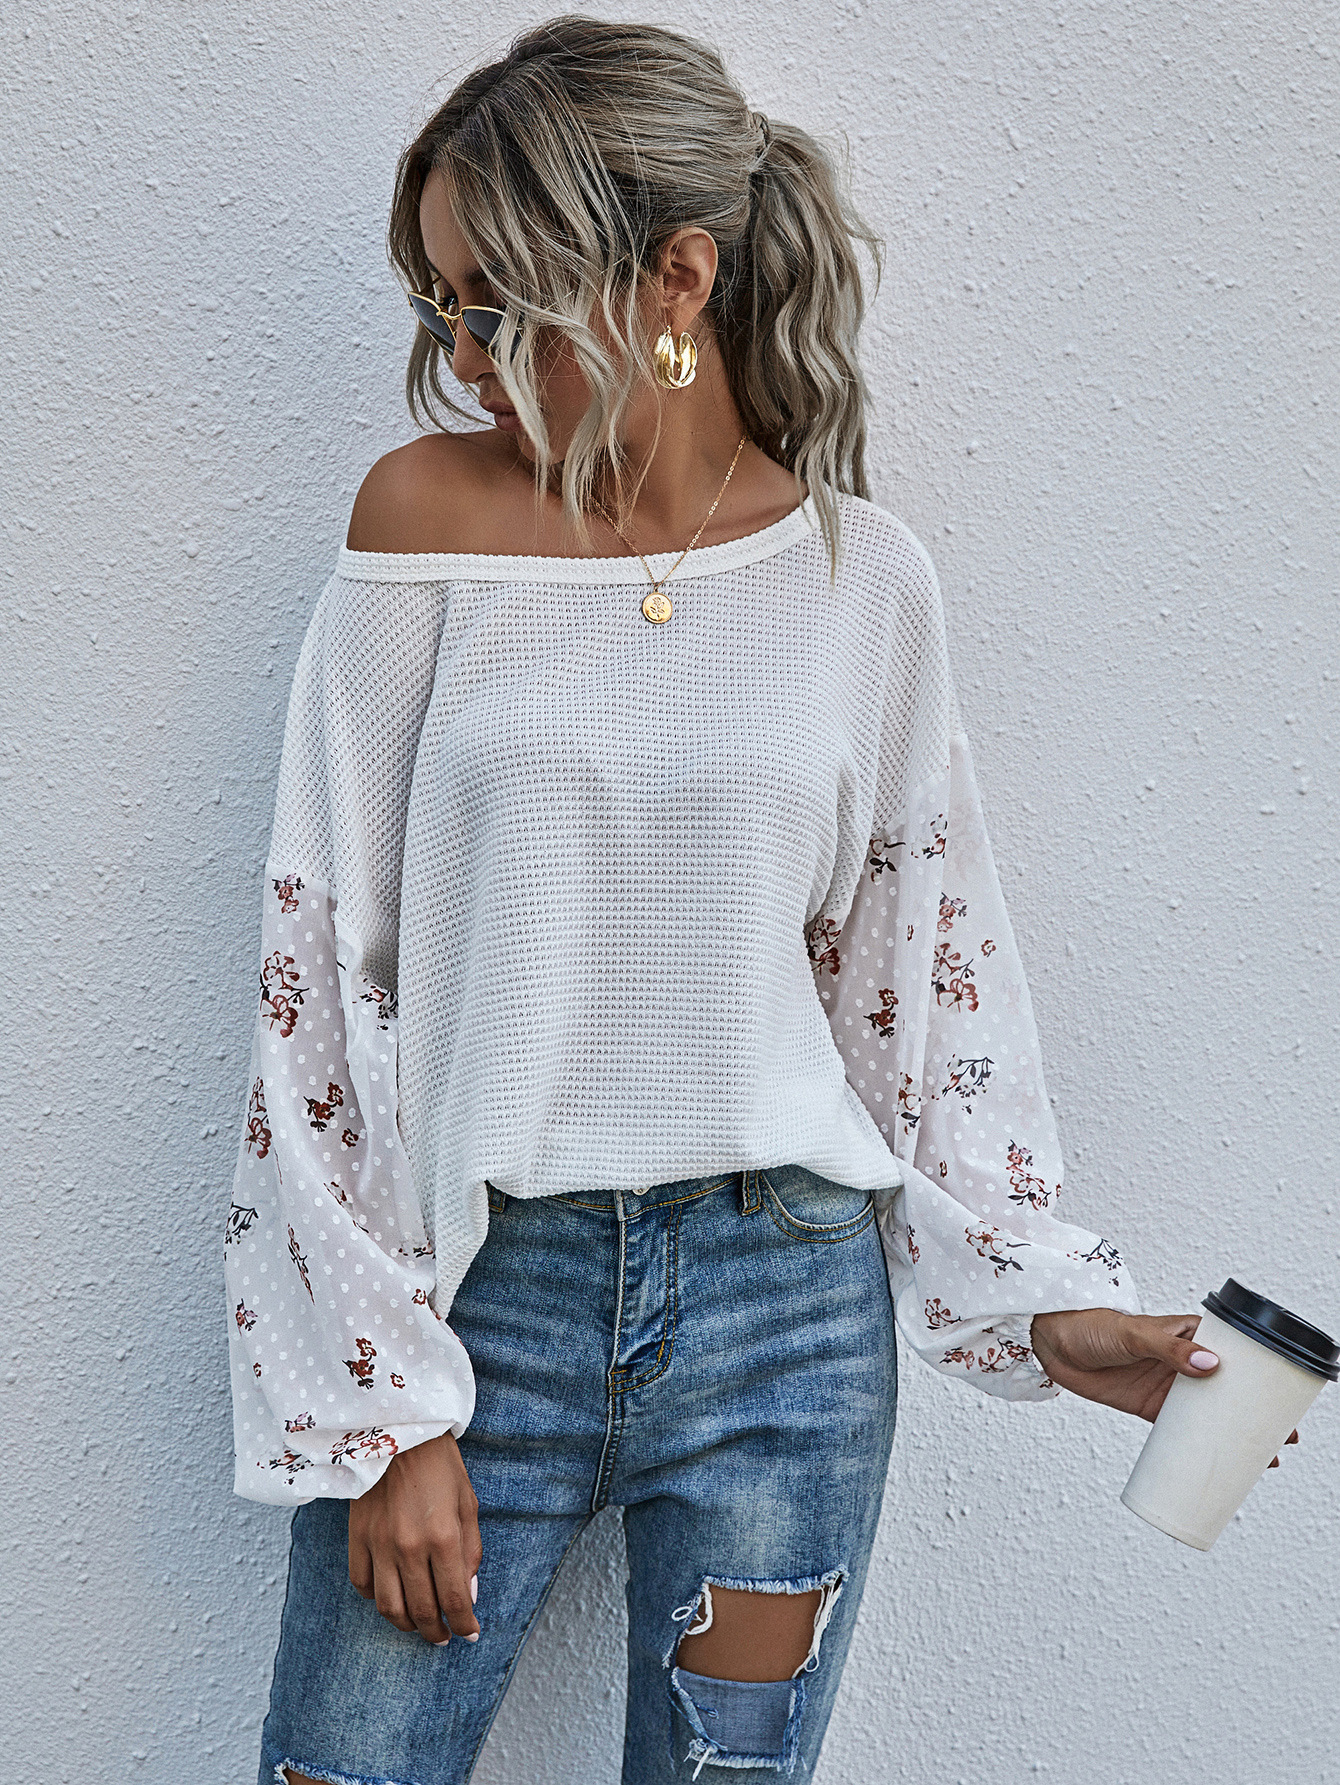 autumn and winter new hot sale round neck stitching lantern sleeve printing loose top NSYD3741